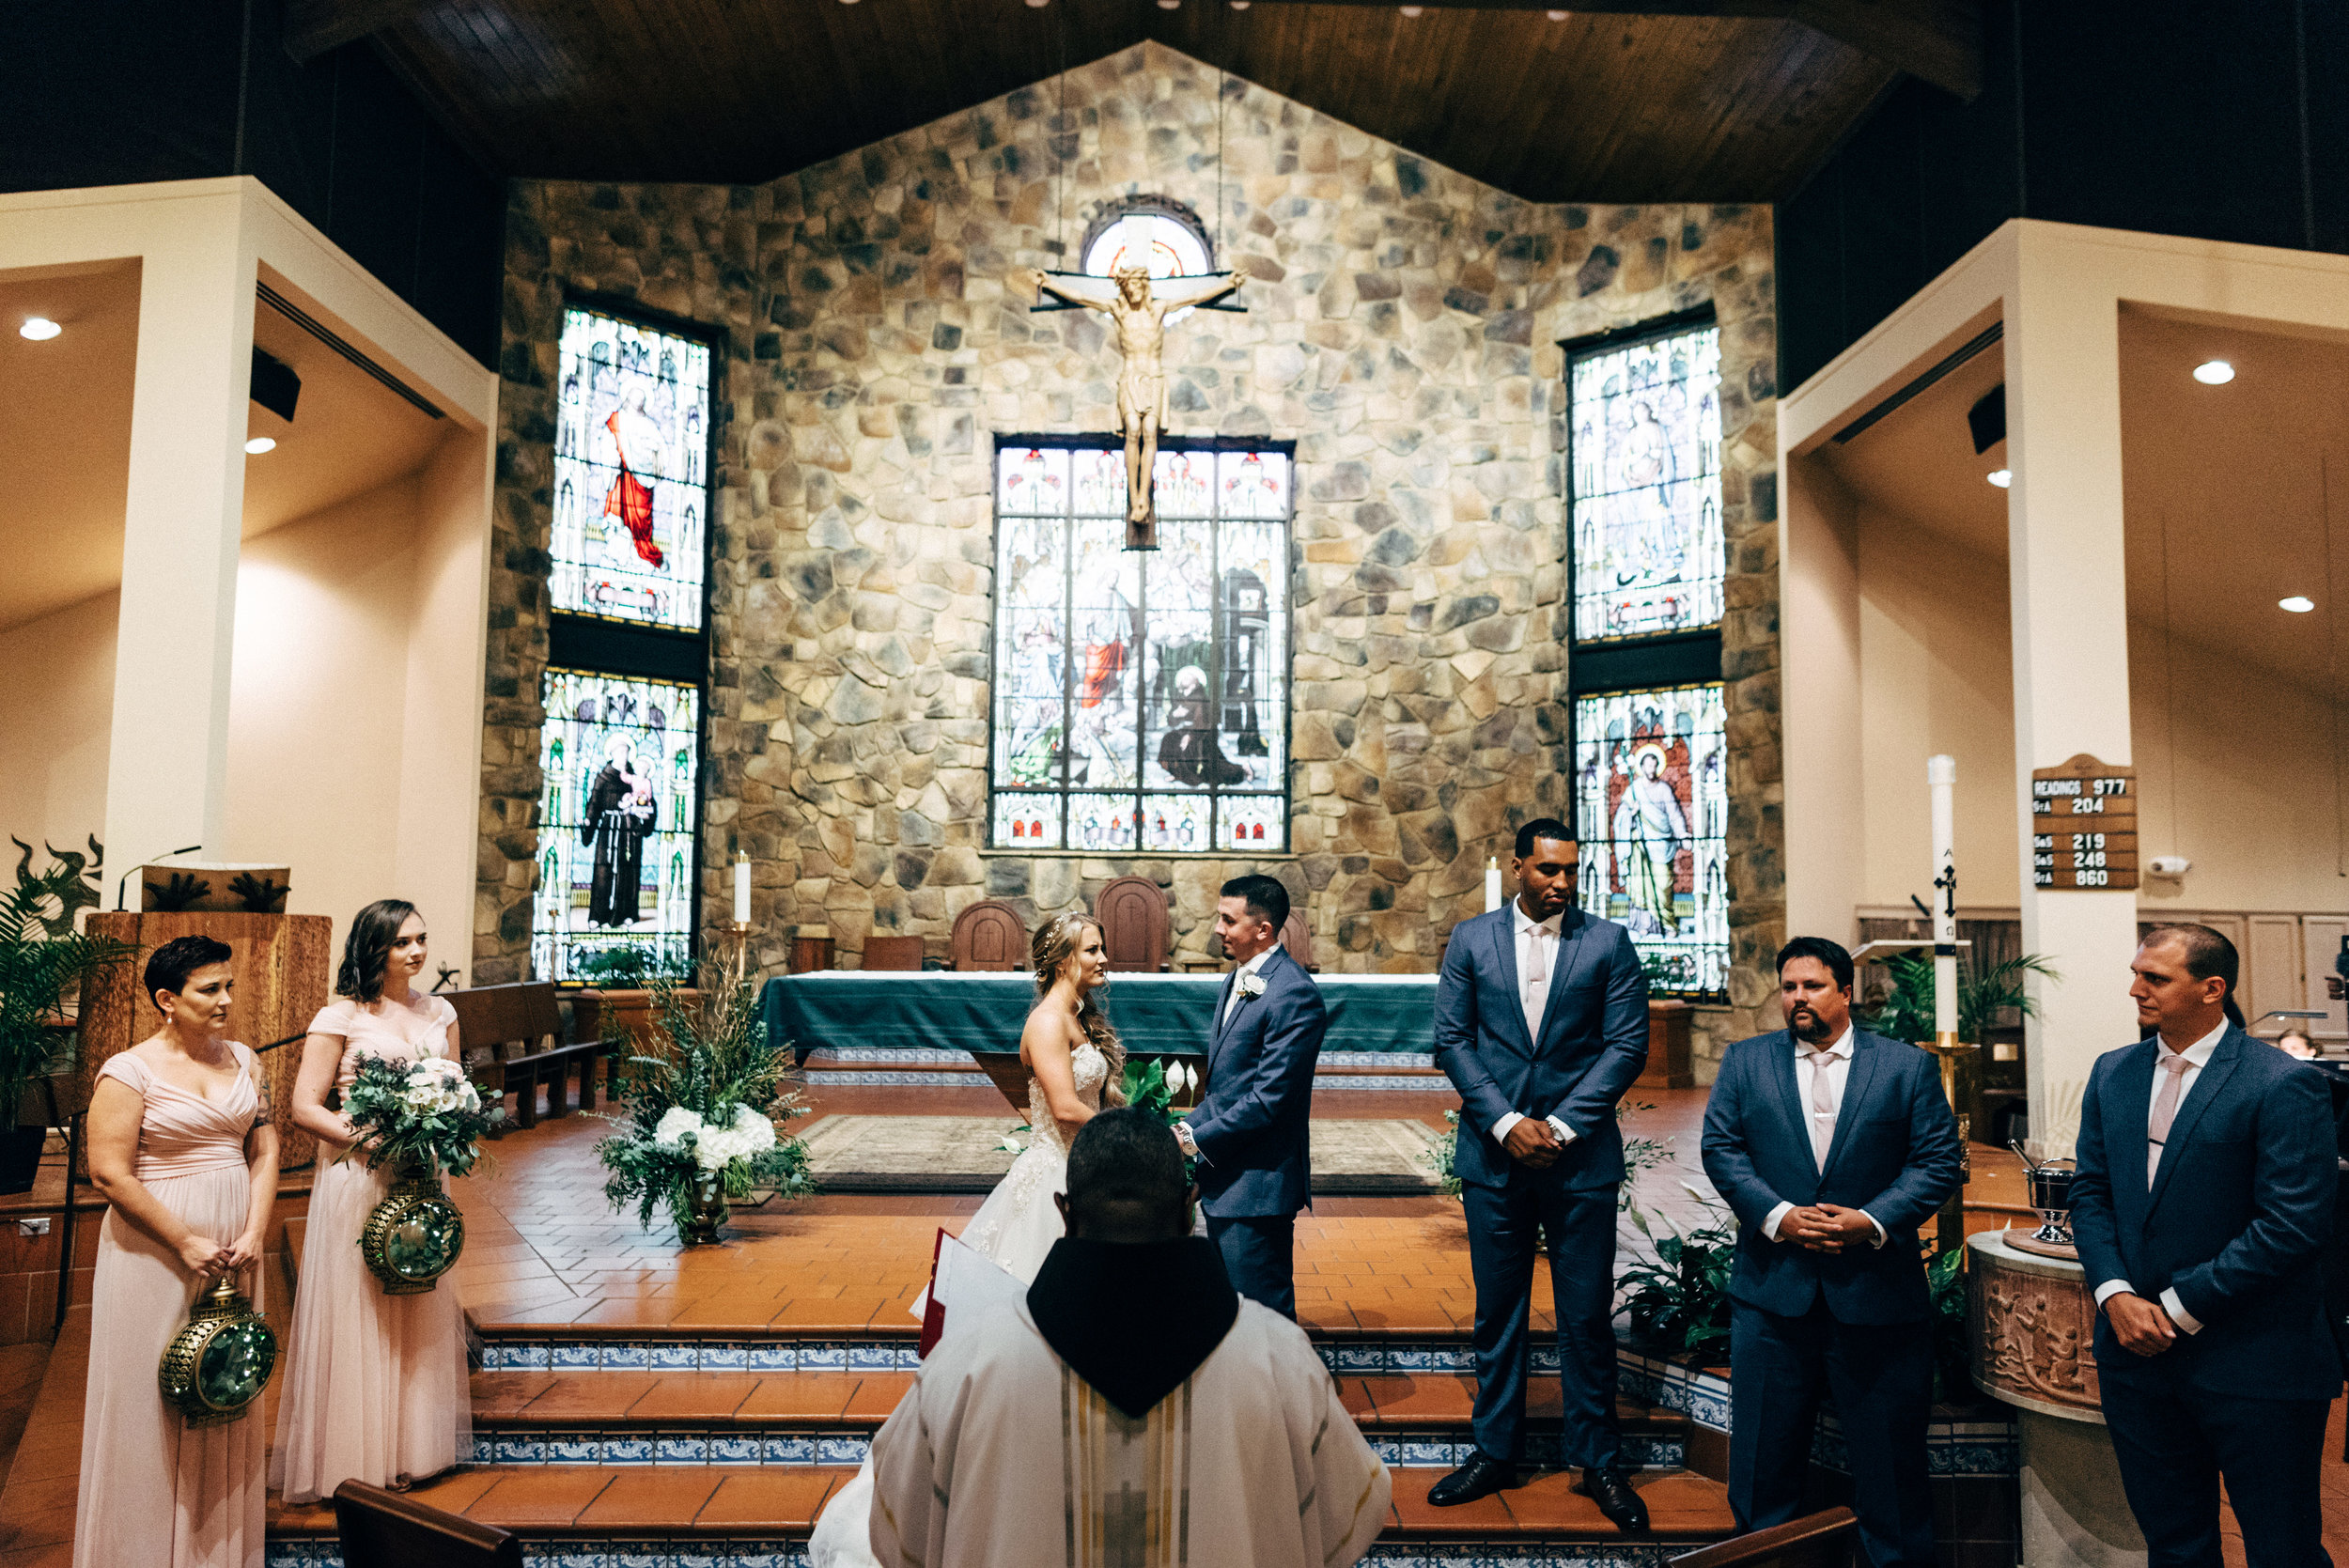 bride and groom during wedding ceremony at St. Francis of Assisi Catholic Church in Triangle, Virginia